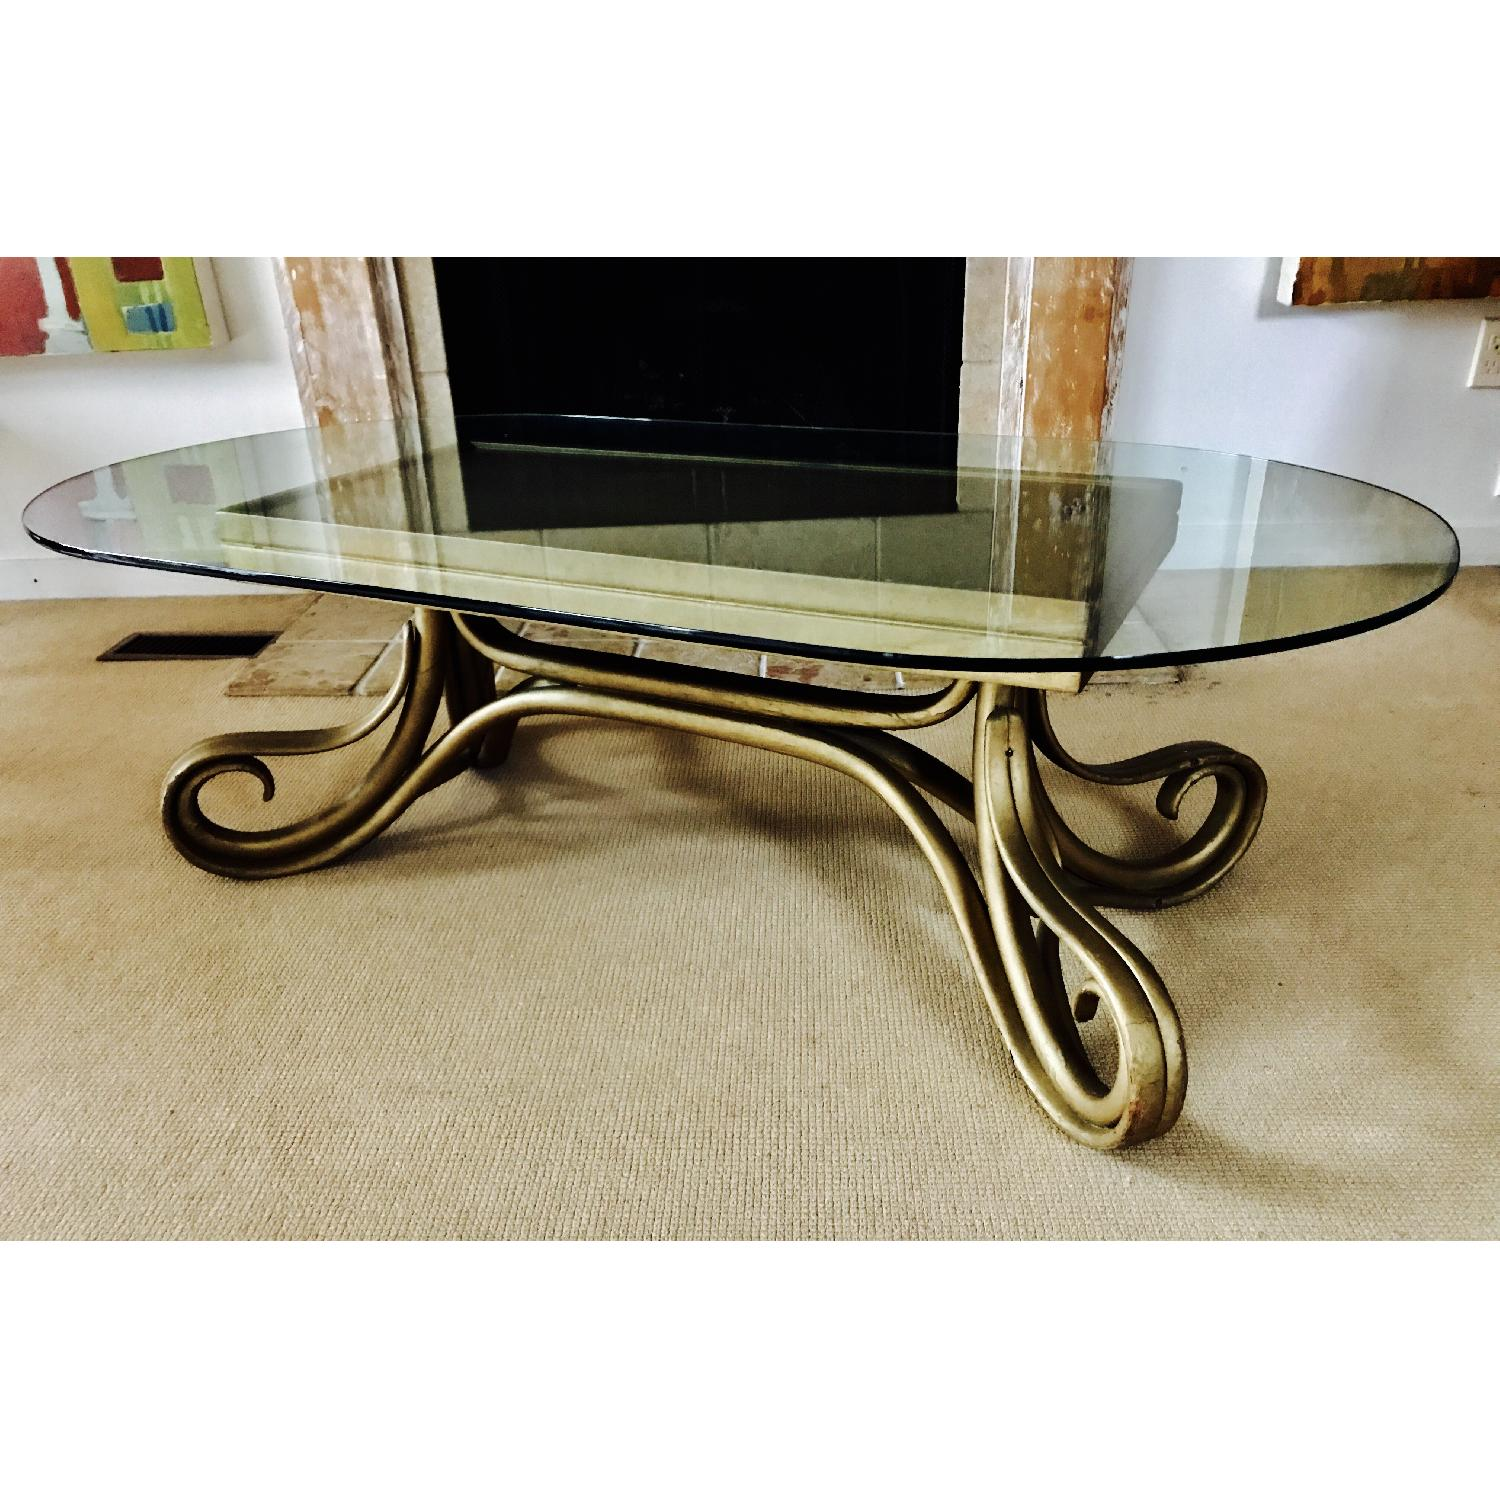 Vintage Thonet Bentwood Glass Top Coffee Table - image-2